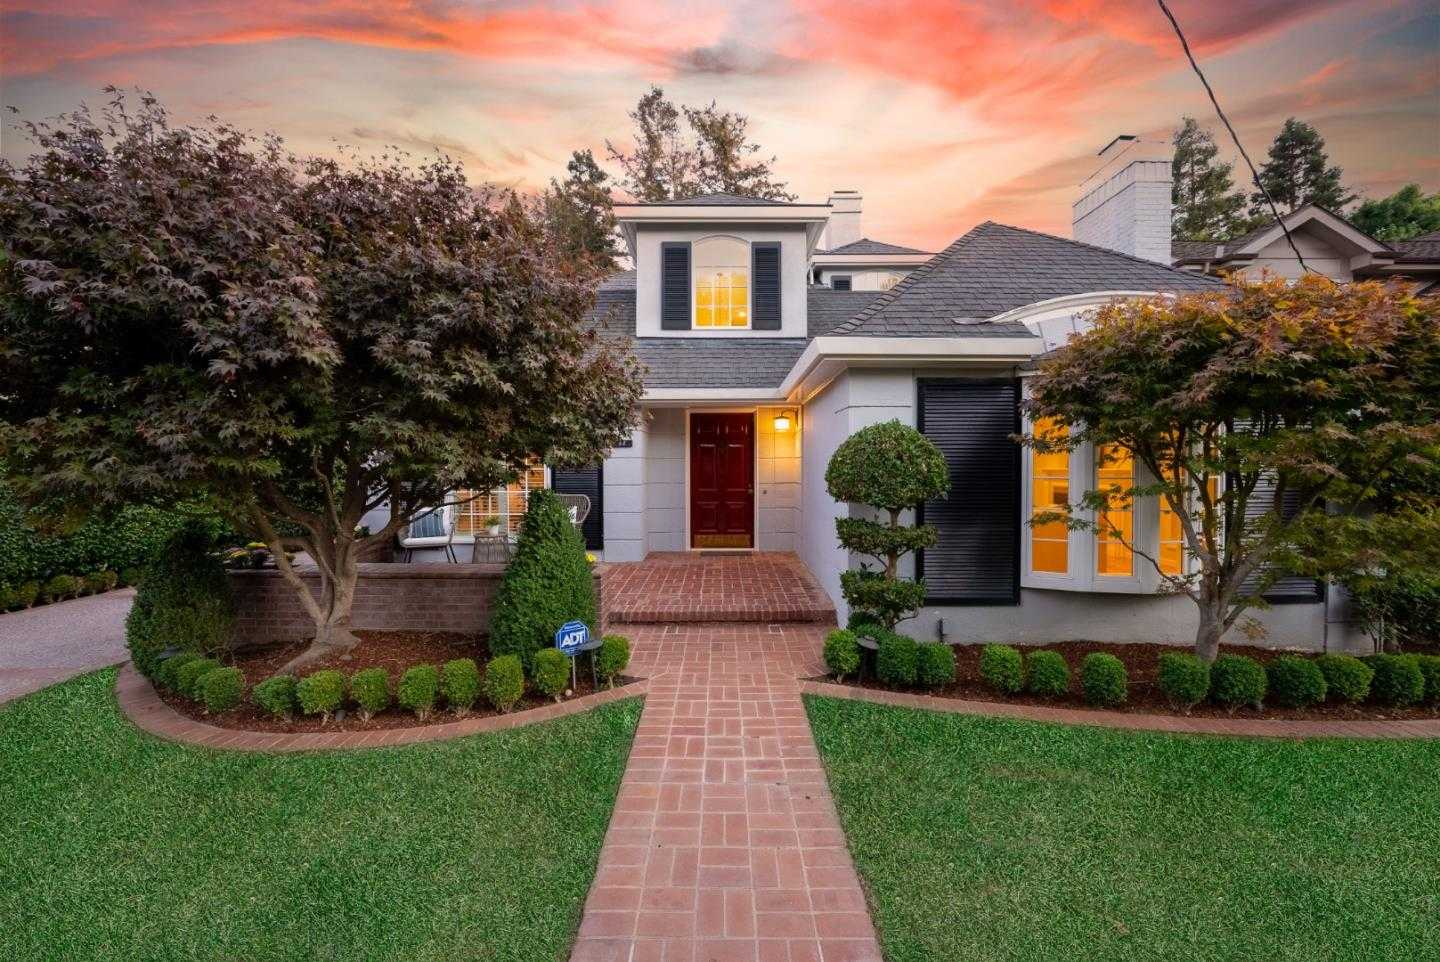 $3,998,000 - 4Br/3Ba -  for Sale in San Mateo